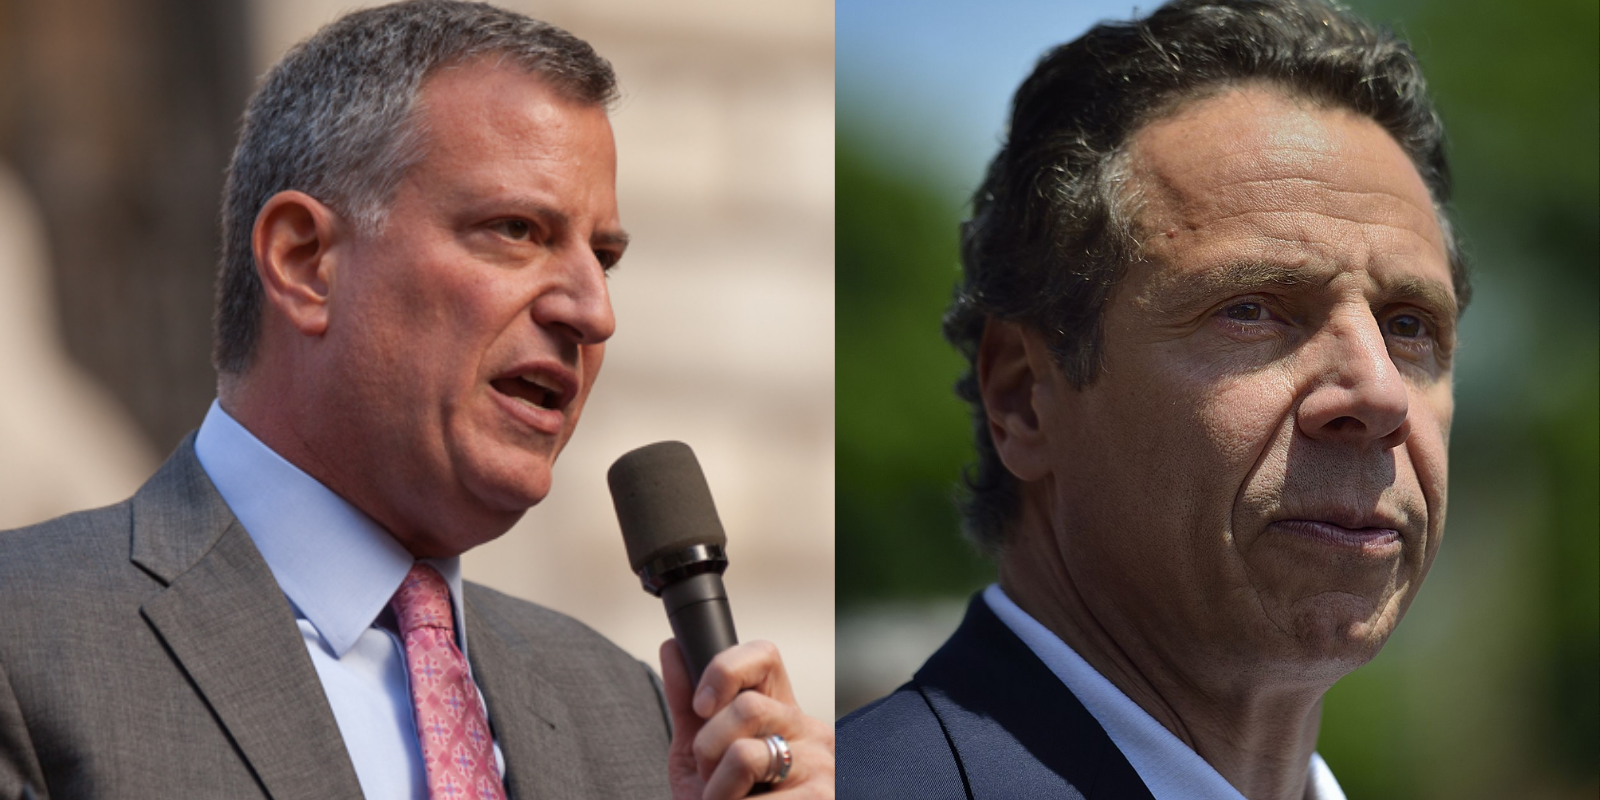 De Blasio stands against Cuomo in battle of the NY Democrats